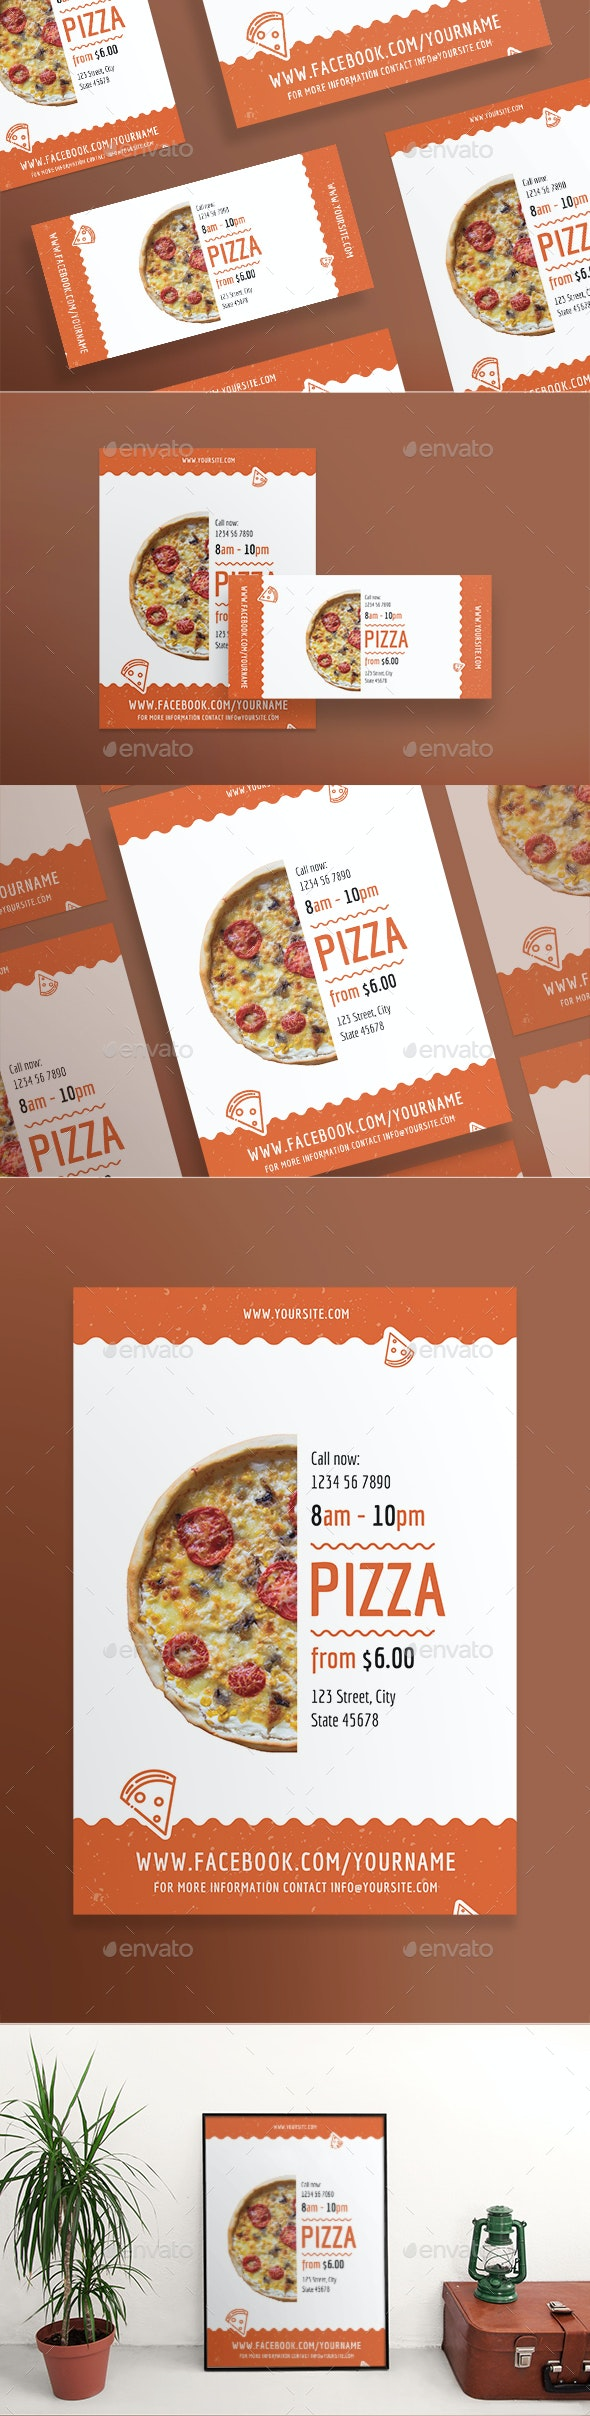 Tasty Pizza Flyers - Restaurant Flyers